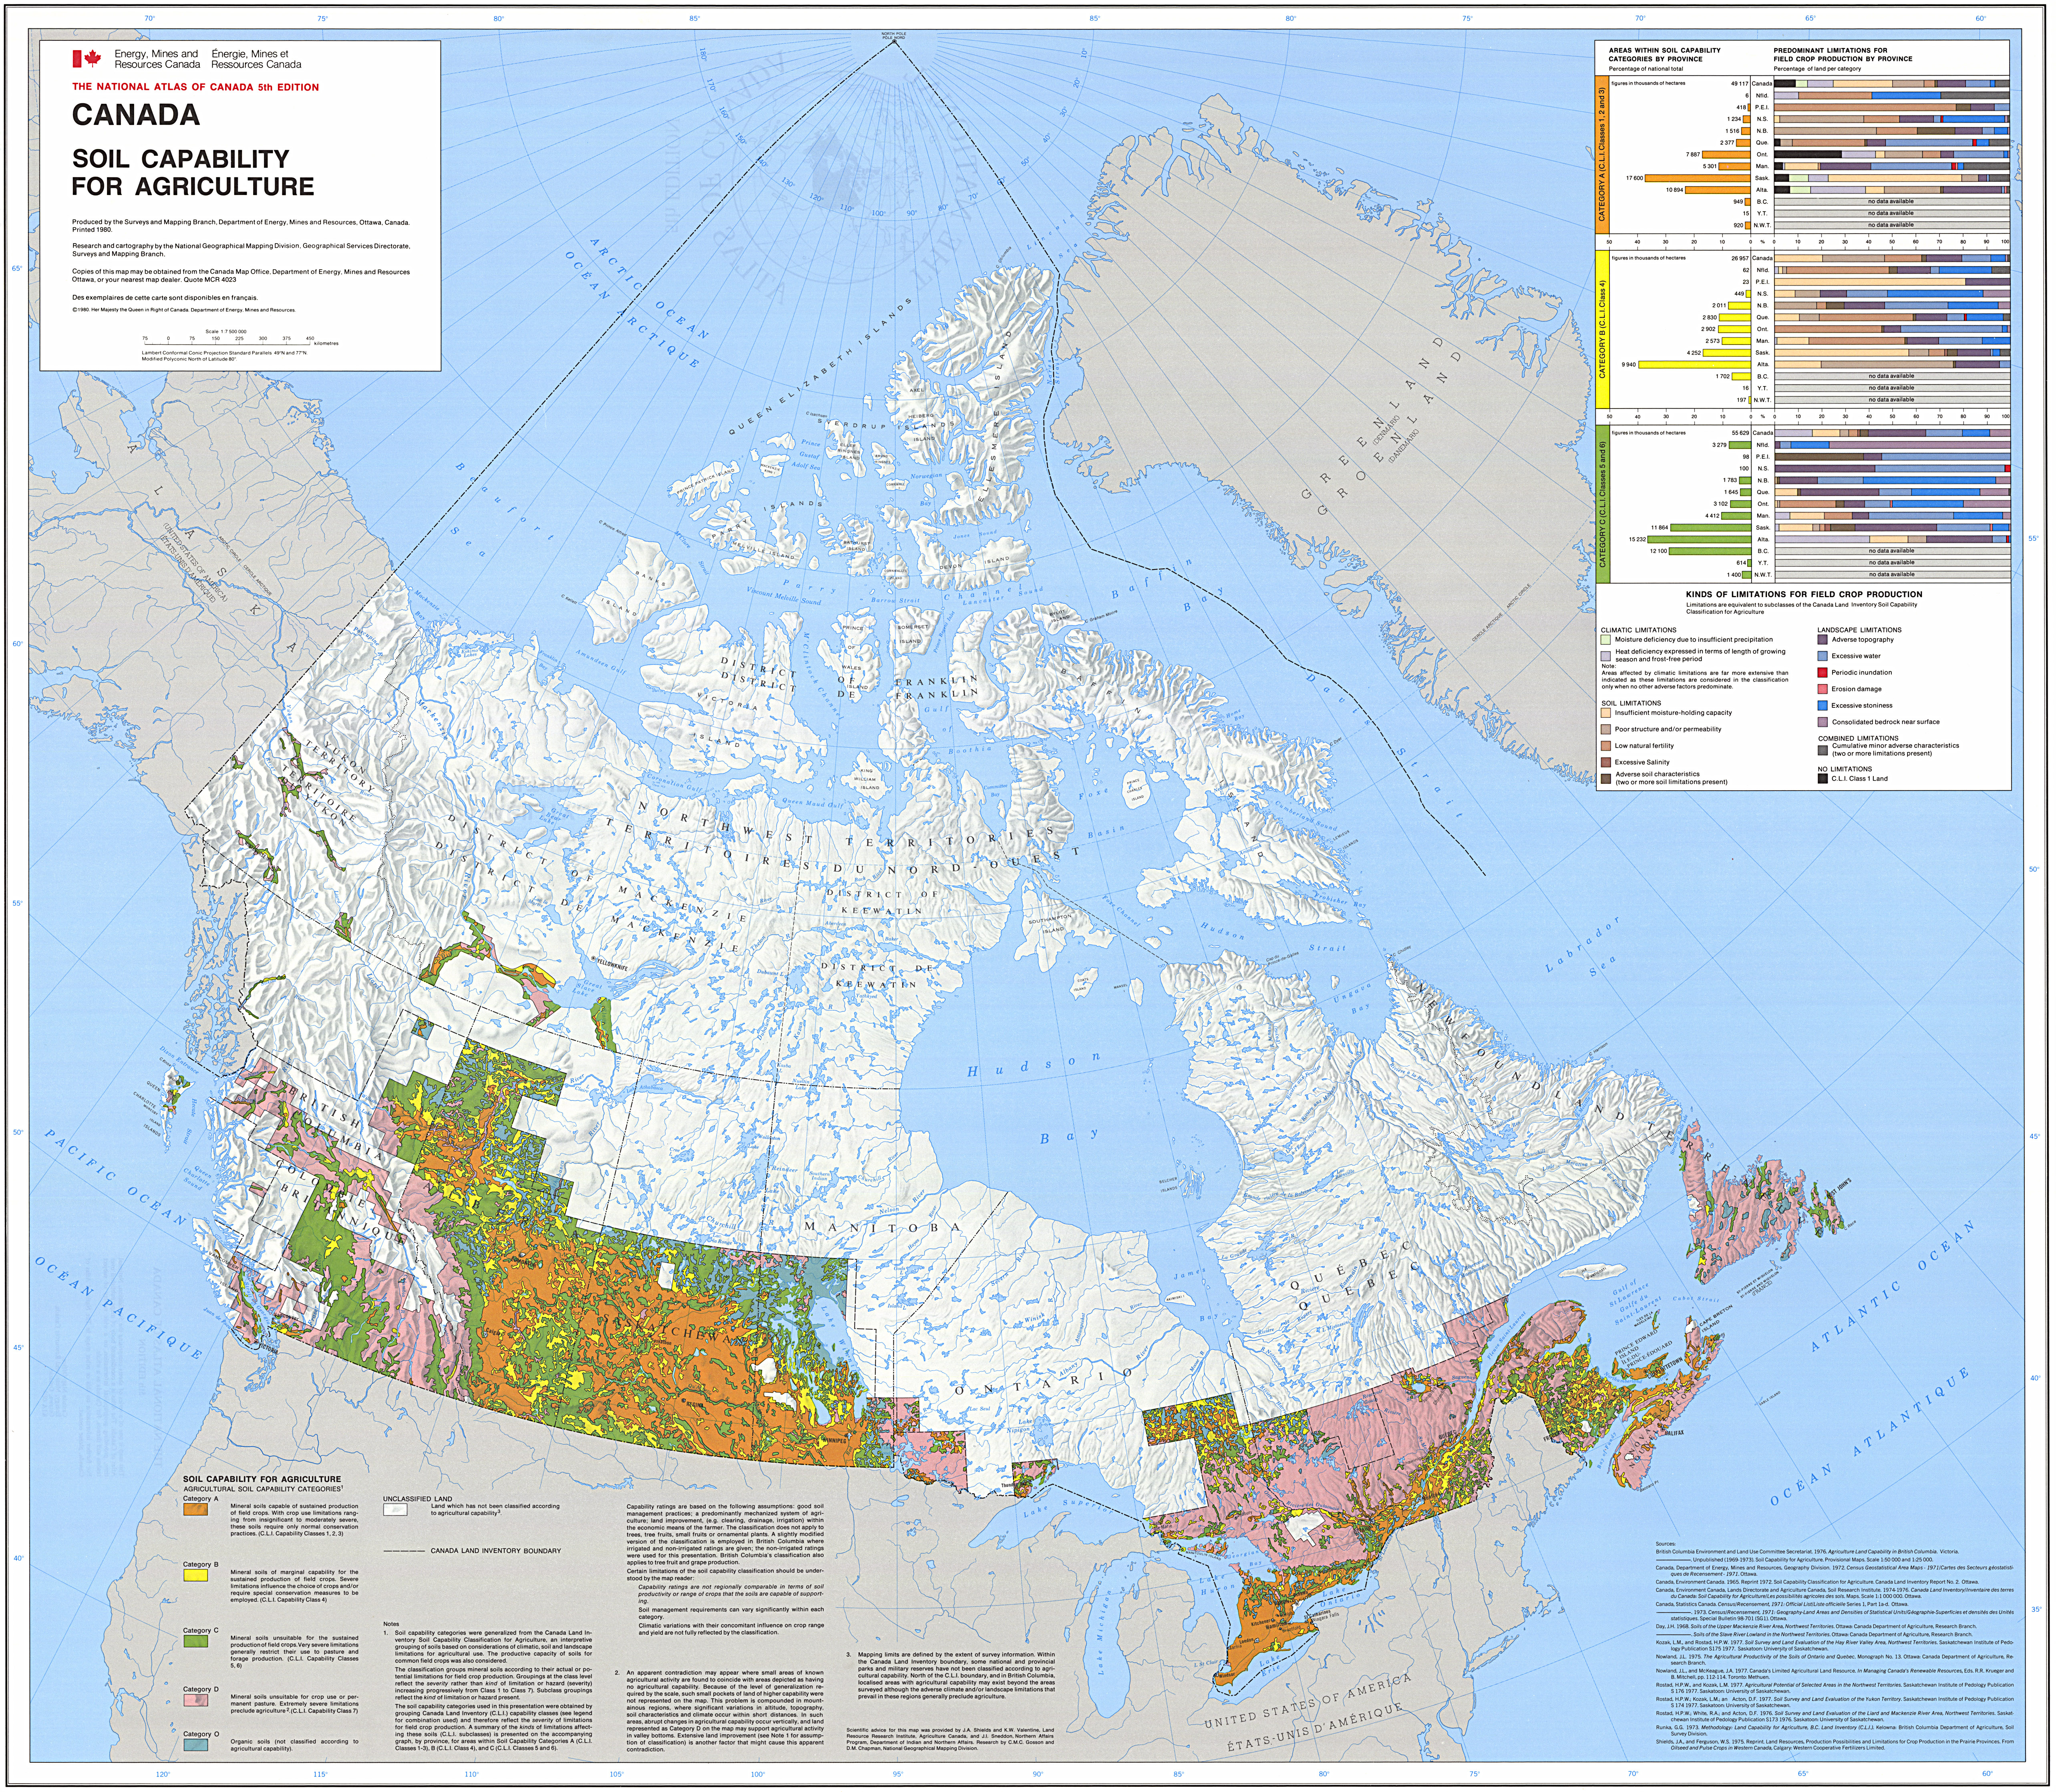 Map Of Canada Population Density.Canadian Population Density Dispersal Archive Skyscraperpage Forum